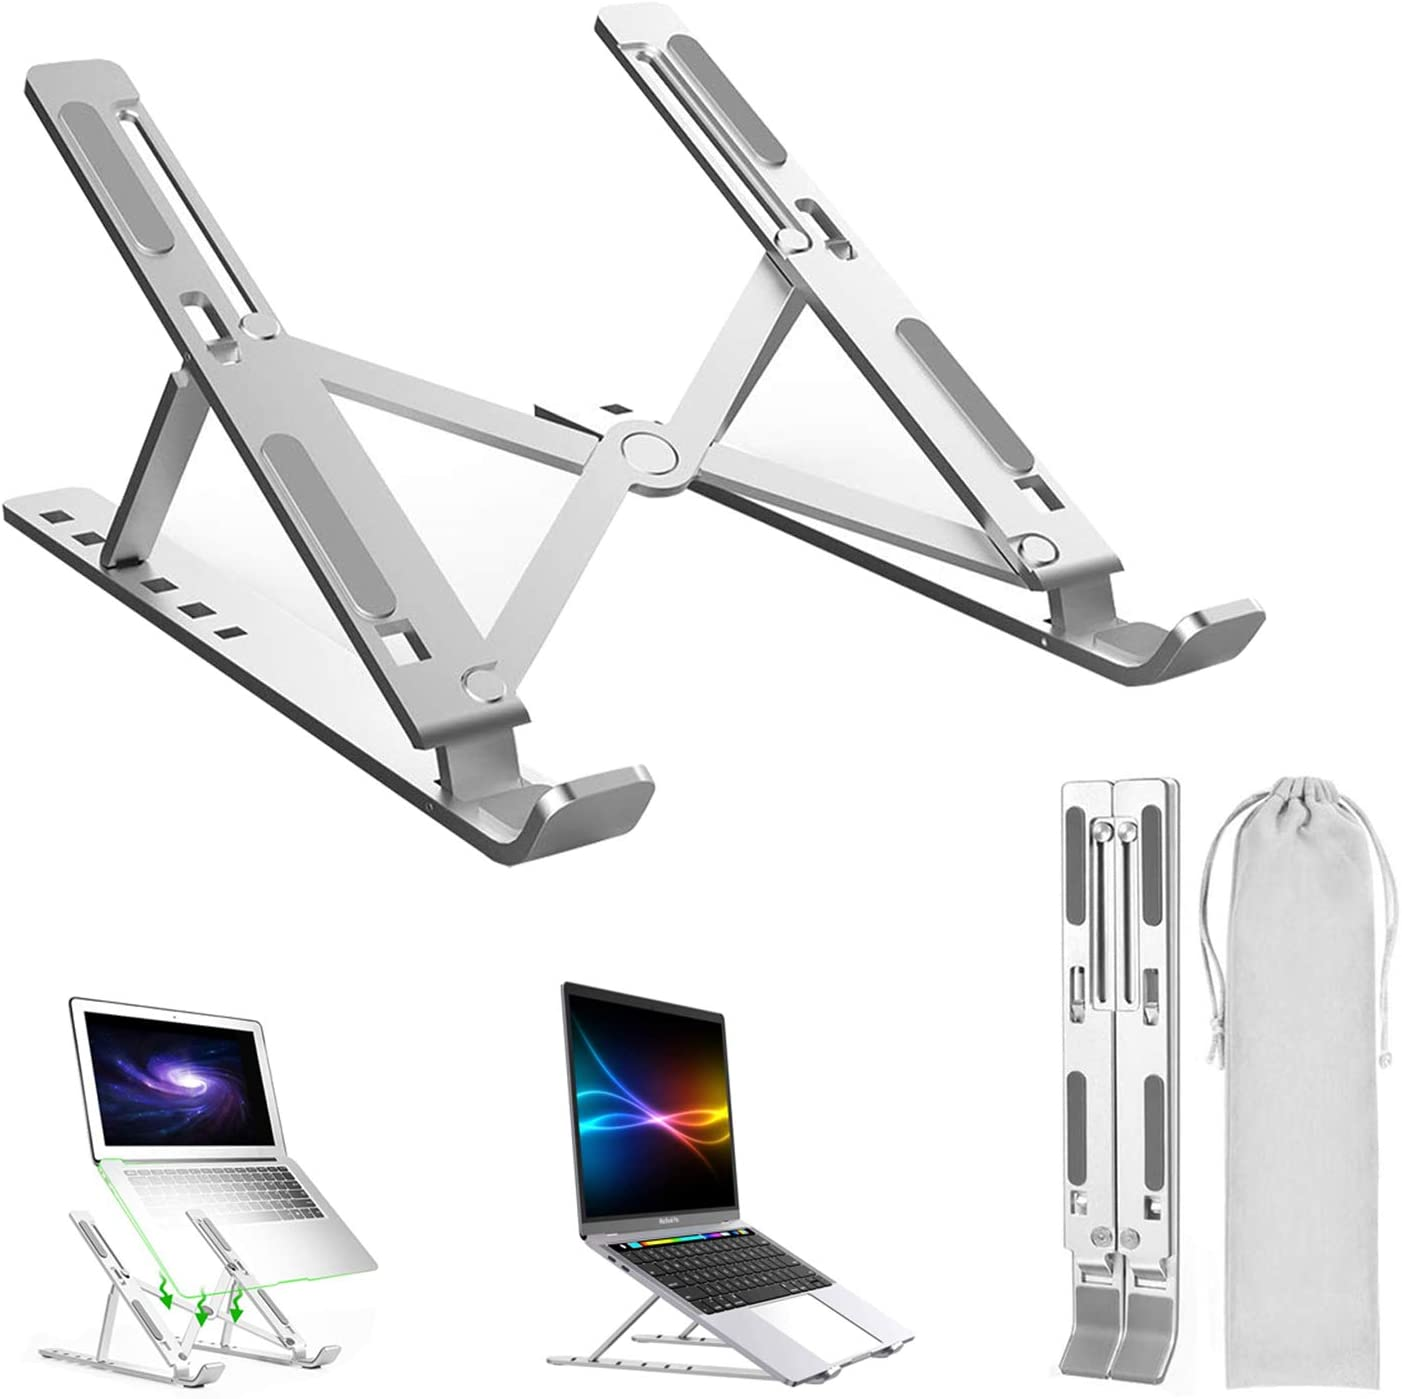 Aluminum Alloy Portable Laptop Stand, Adjustable Folding Notebook Stand Mount for MacBook Air Pro,HP,Lenovo,Dell,More 10-15.6